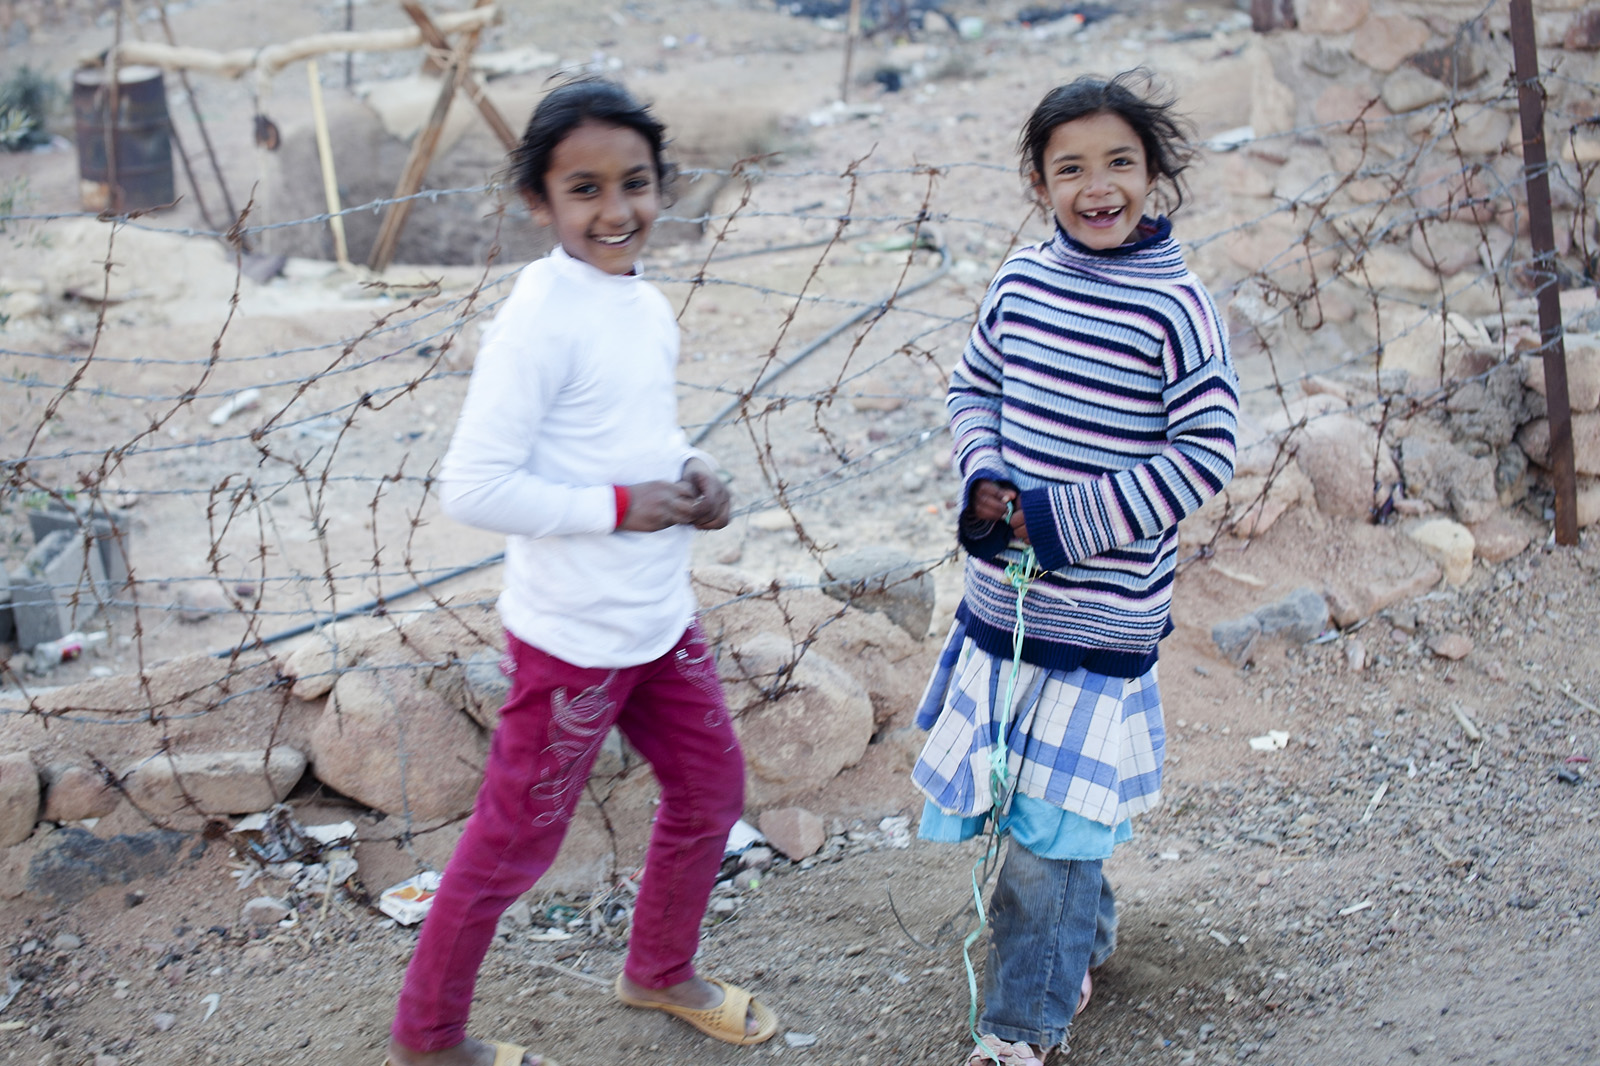 Village girls play in the town at the bottom of Mt Sinai.